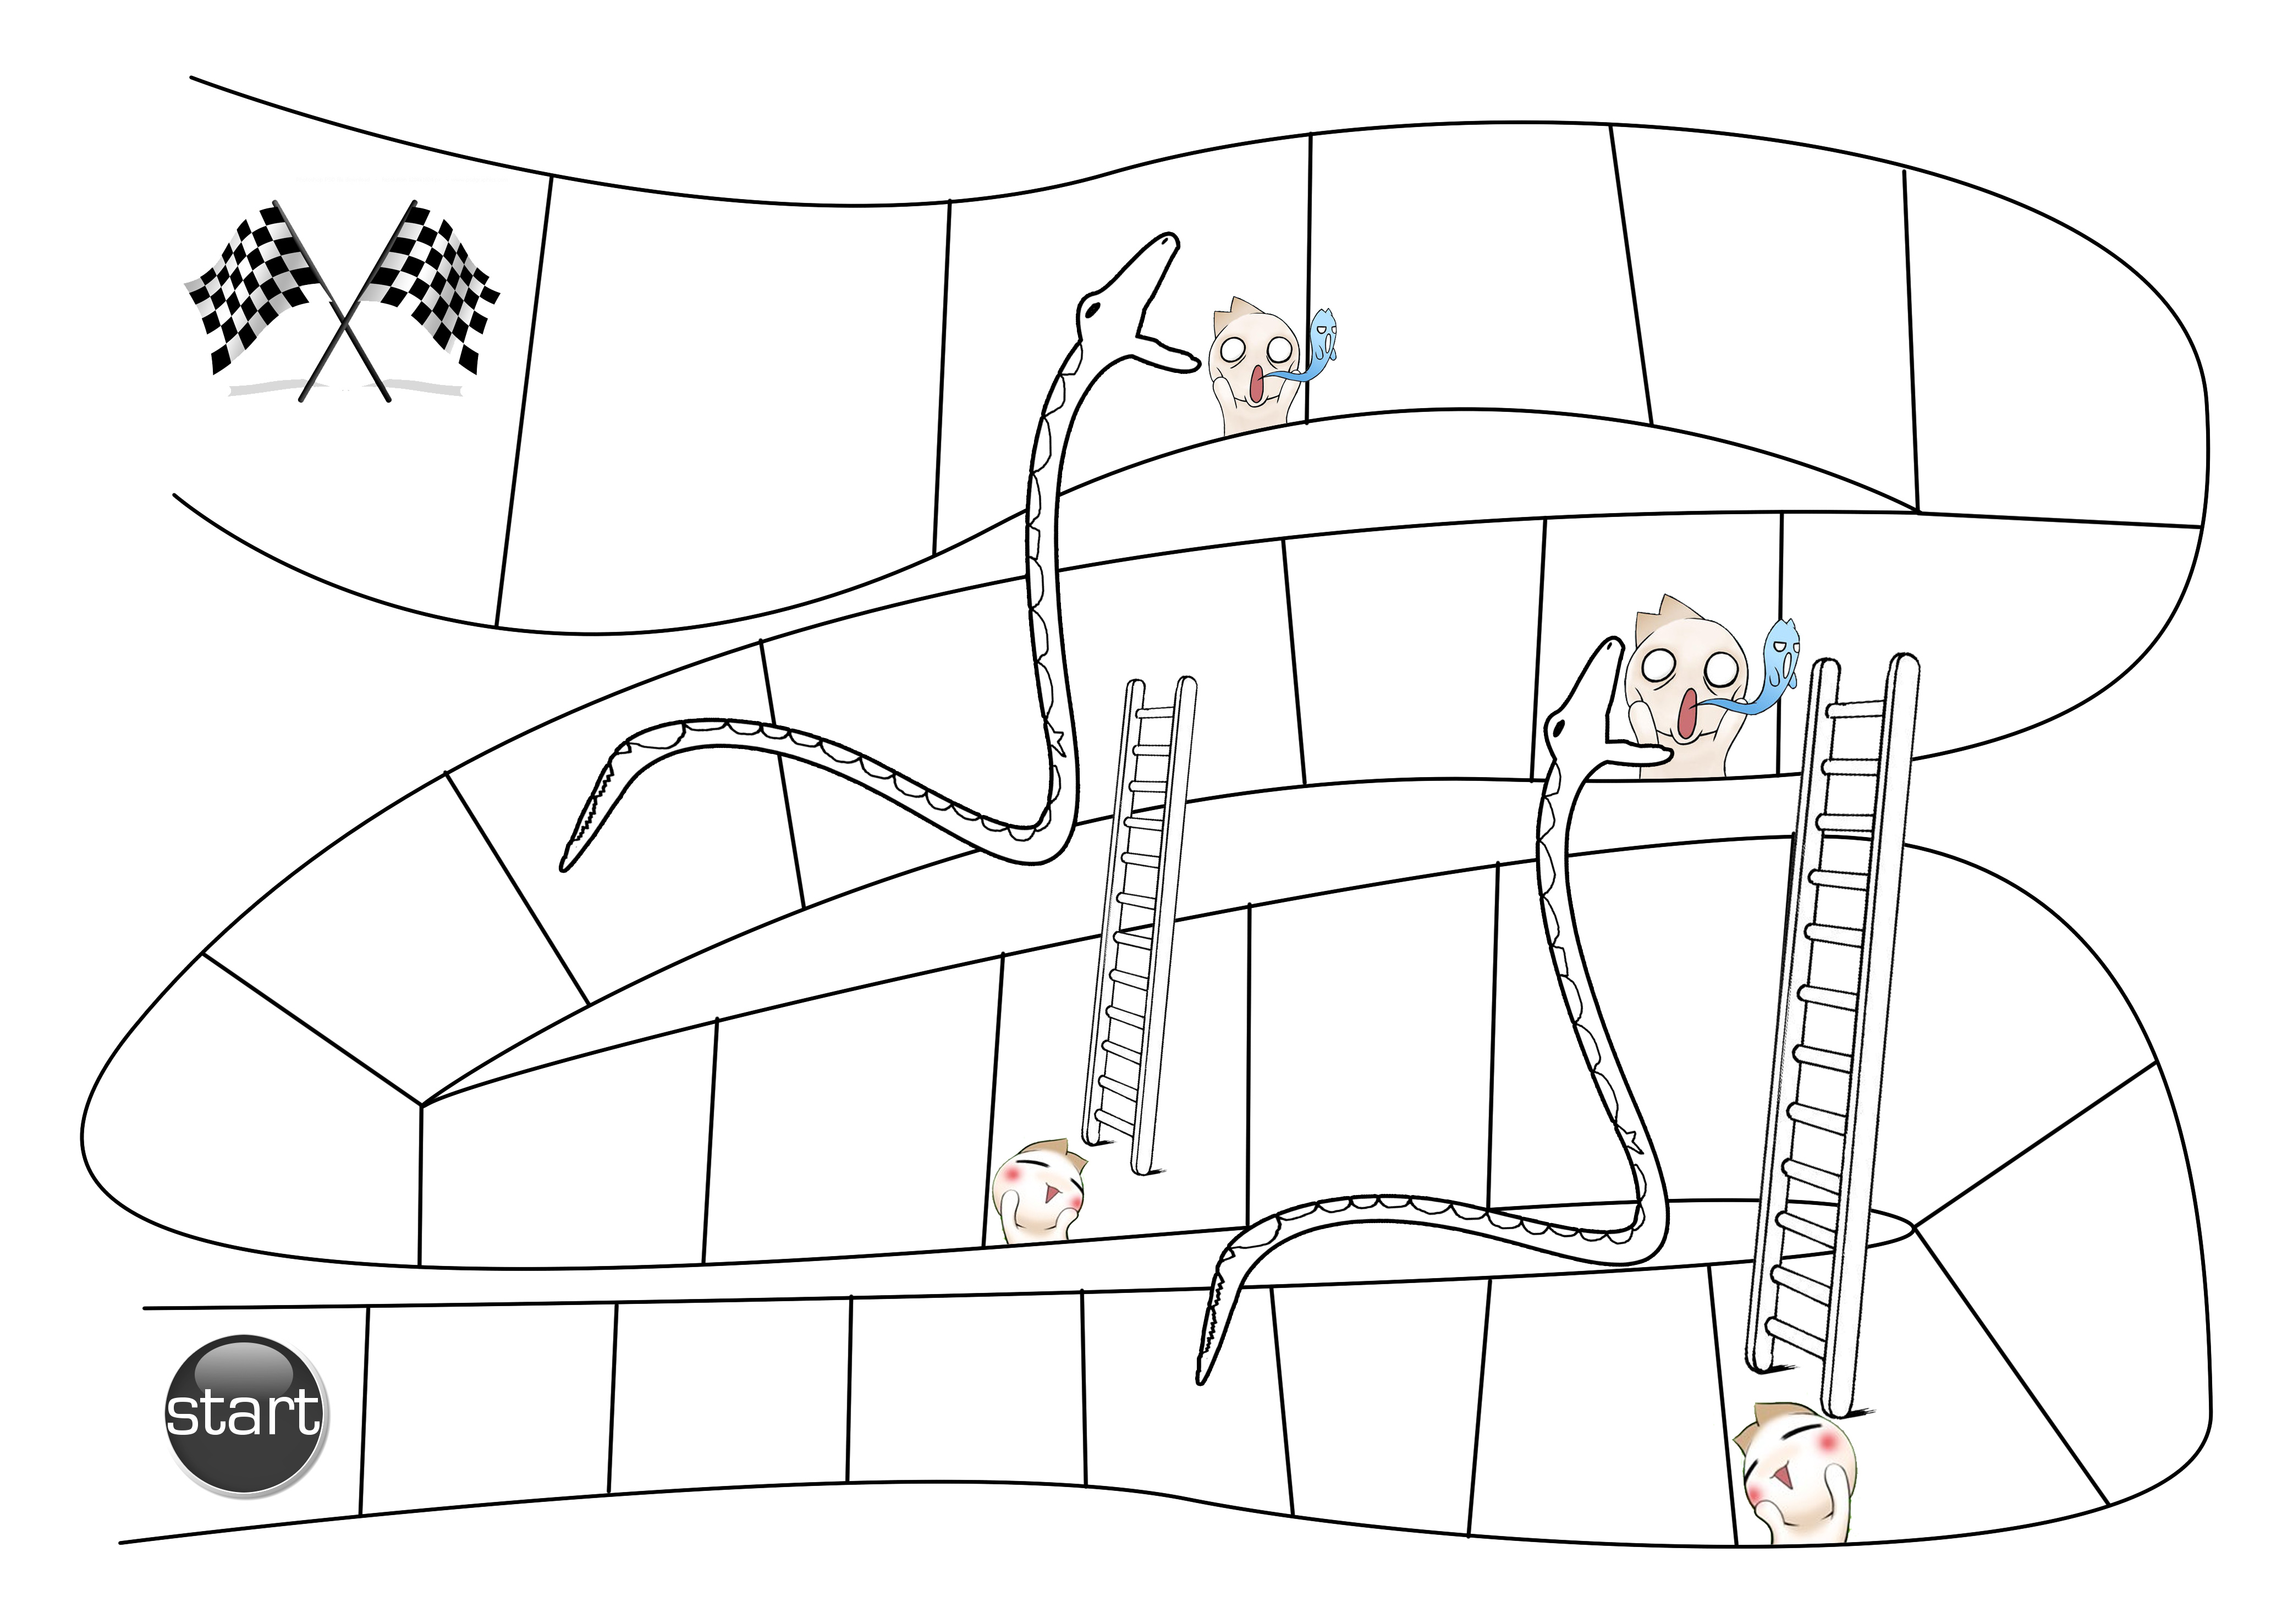 Ladders Game Printable And Boards Snakes Blank